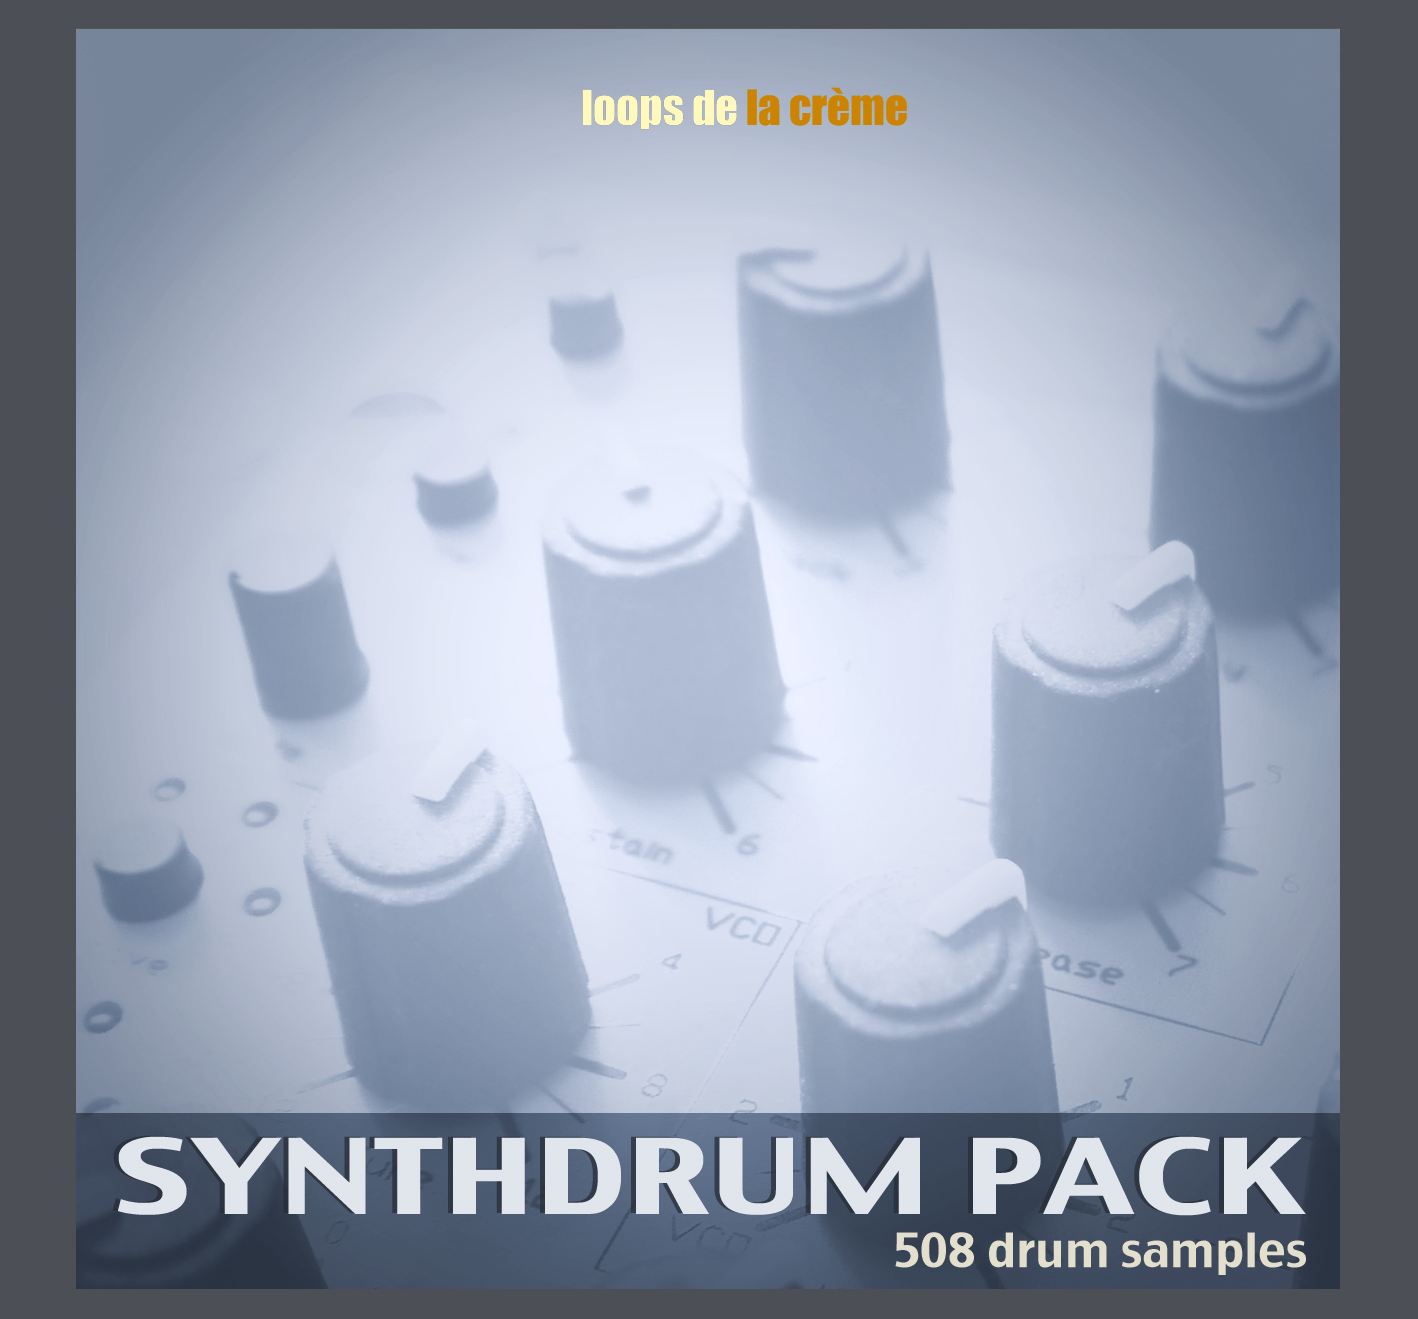 synthdrum pack_new2.jpg